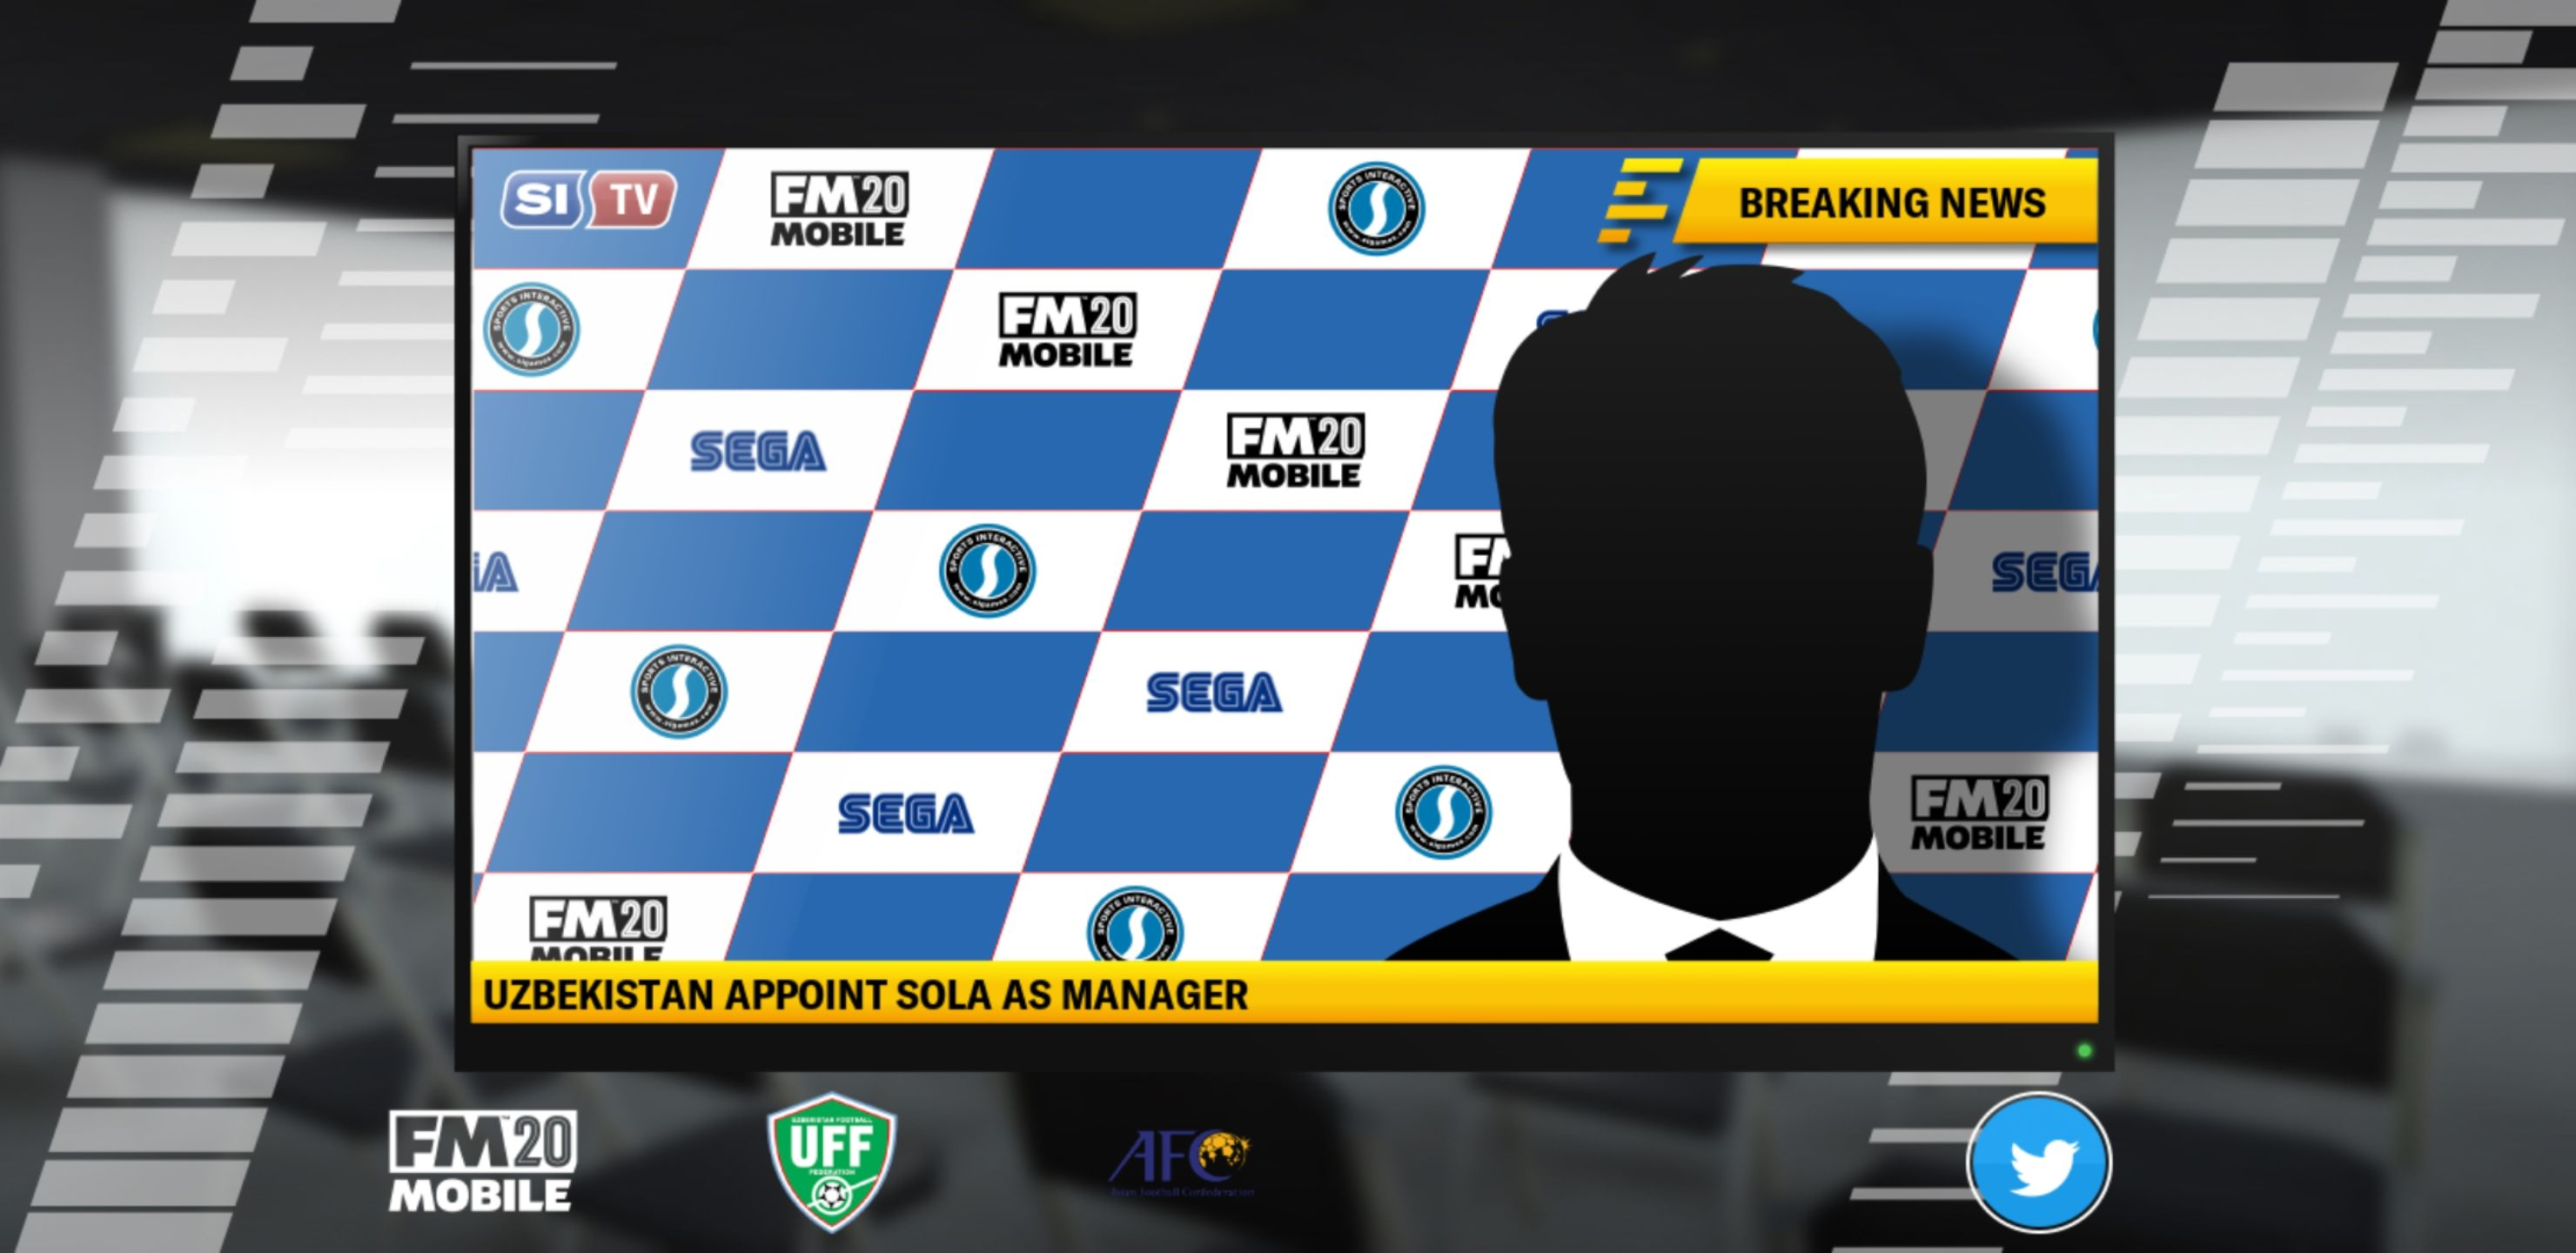 Steps For Success A Guide To Fmm 20 Football Manager 2020 Mobile Fmm Vibe